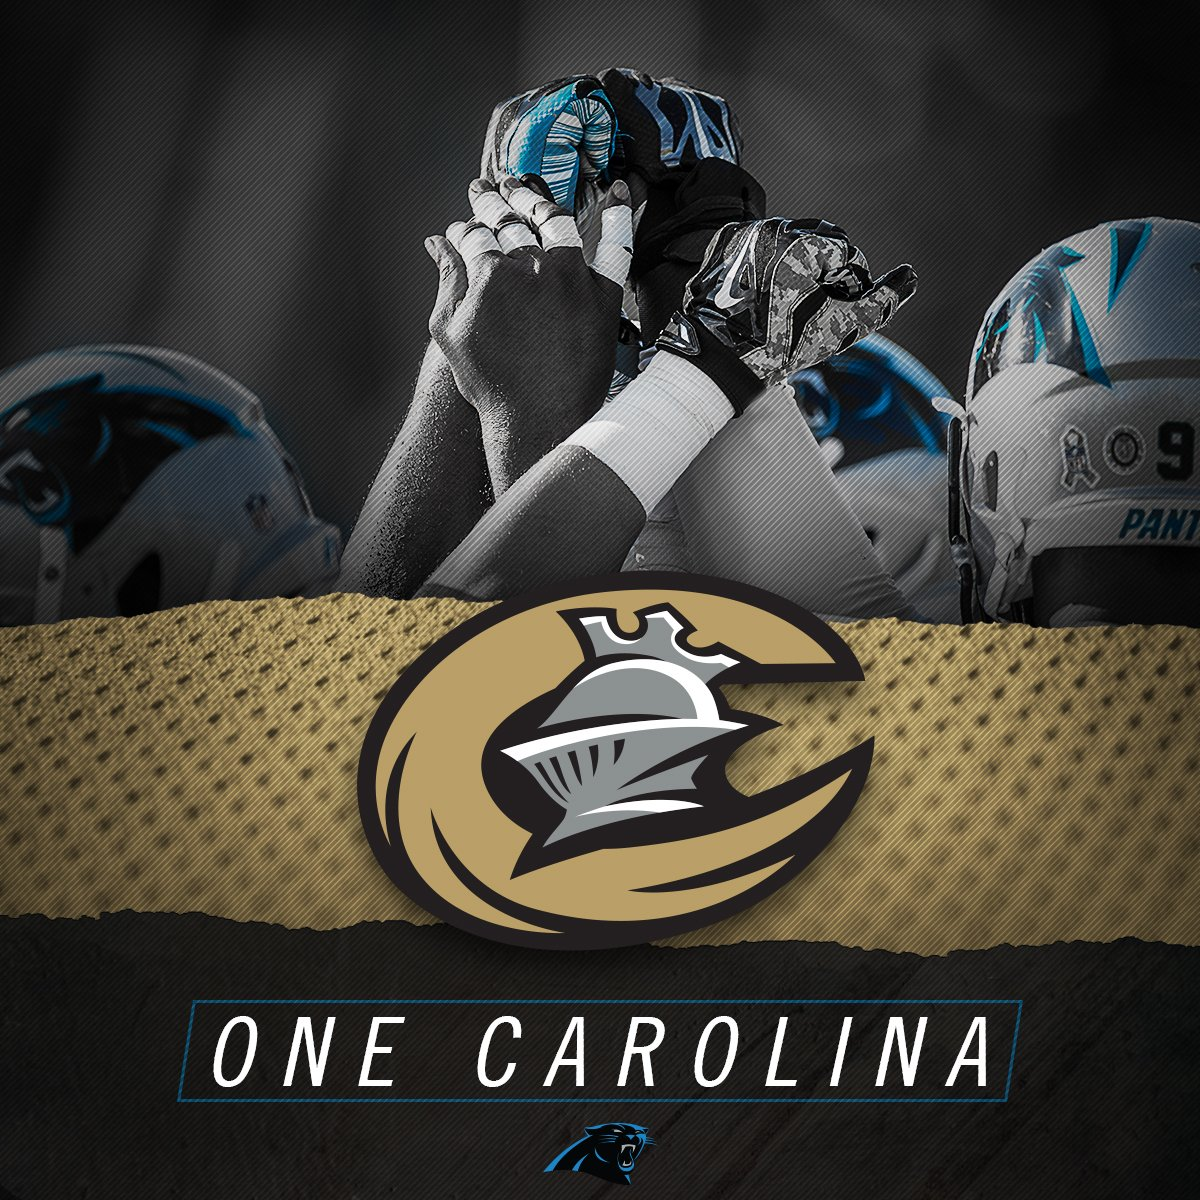 To our #UptownCLT neighbors, @Panthers, we have your back today, Sunday, & every day!  #OneCarolina #KeepPounding https://t.co/0EjdXZg7oR